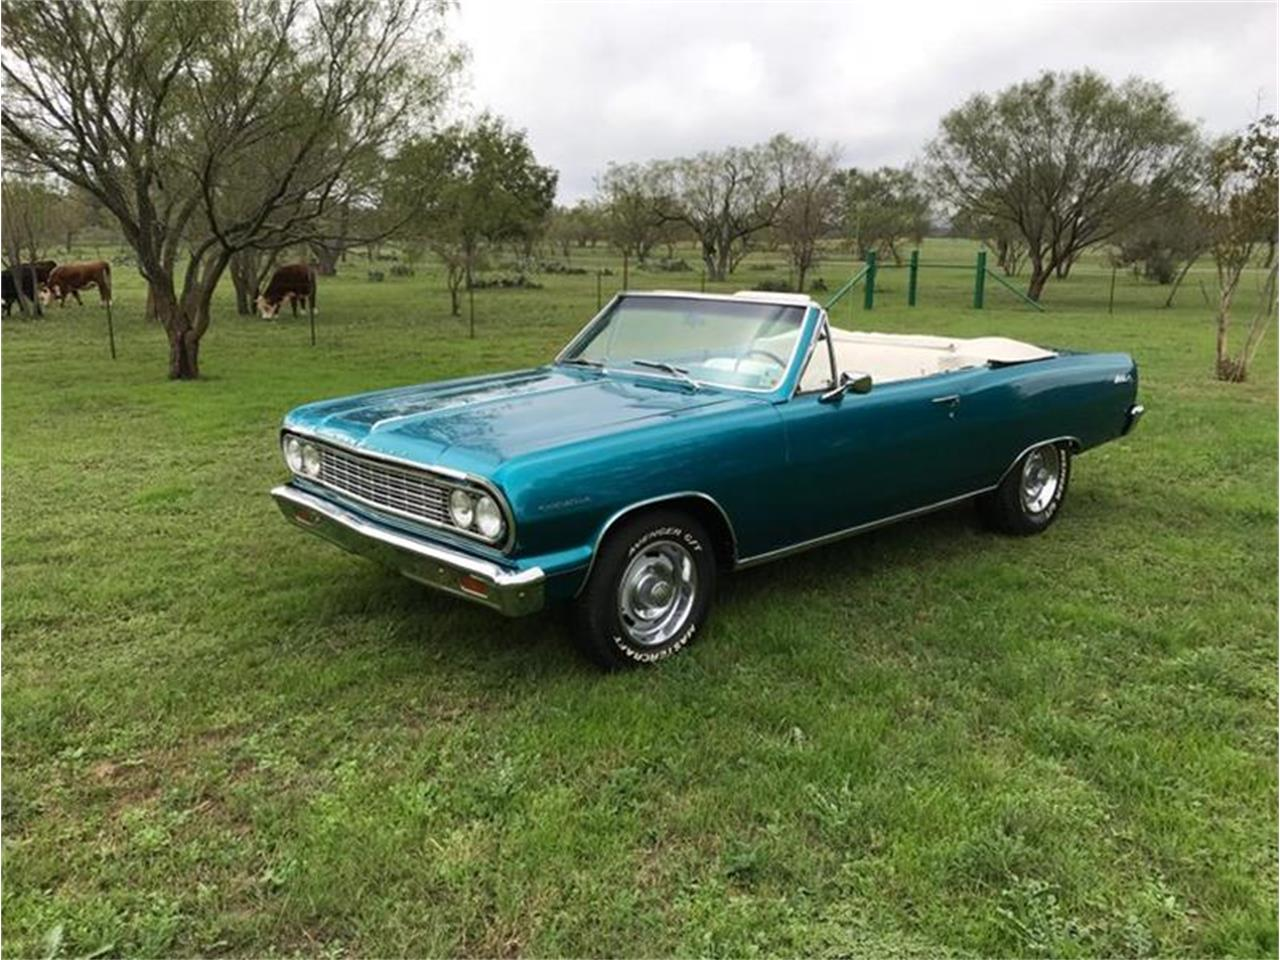 1964 Chevrolet Chevelle for sale in Fredericksburg, TX – photo 45